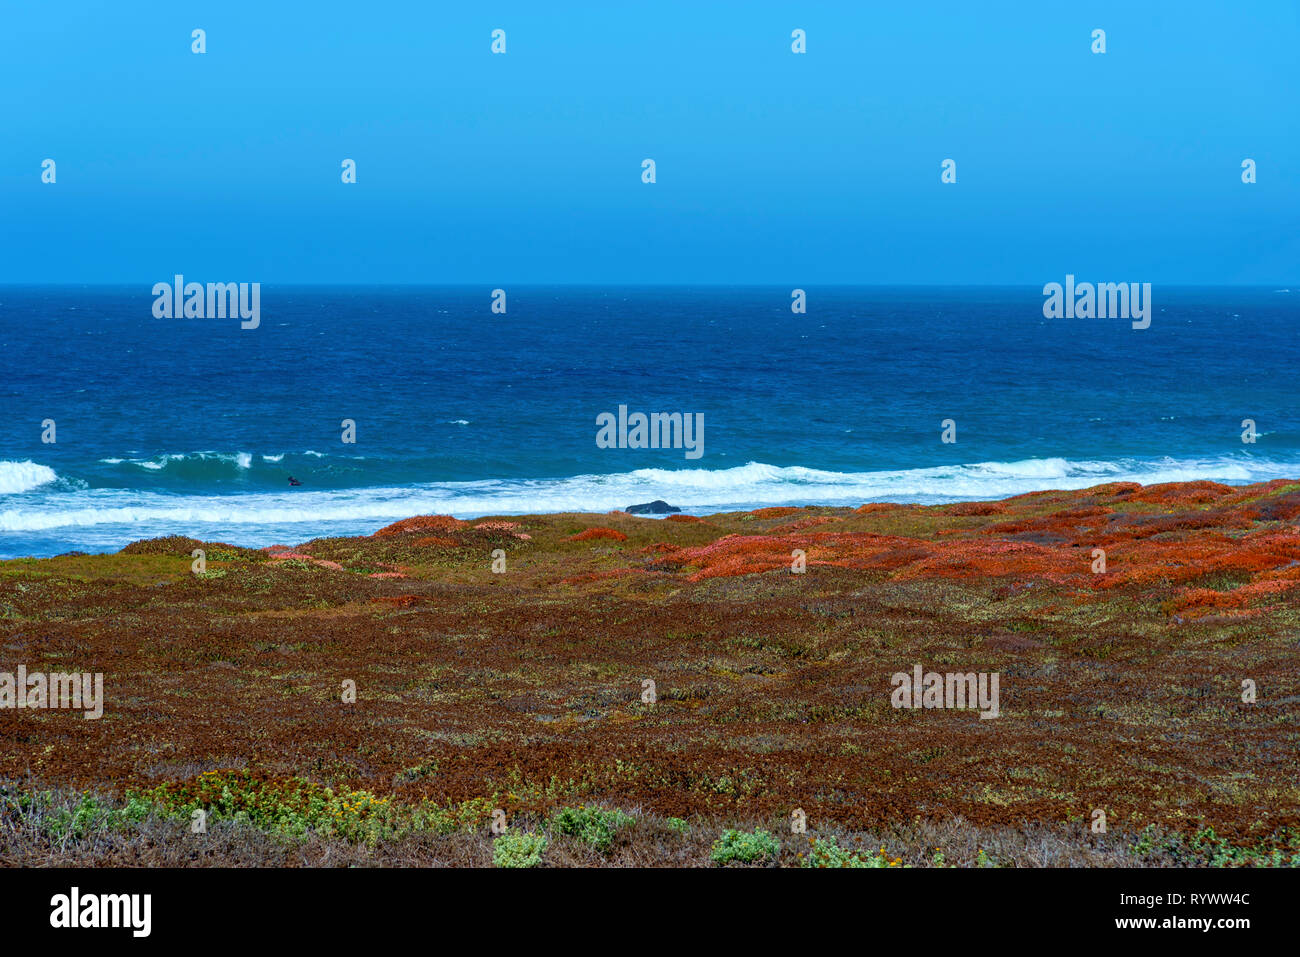 Dark blue ocean waves with white waves breaking onto shoreline under bright blue sky. Autumn colored fields overlooking seashore beyond. - Stock Image